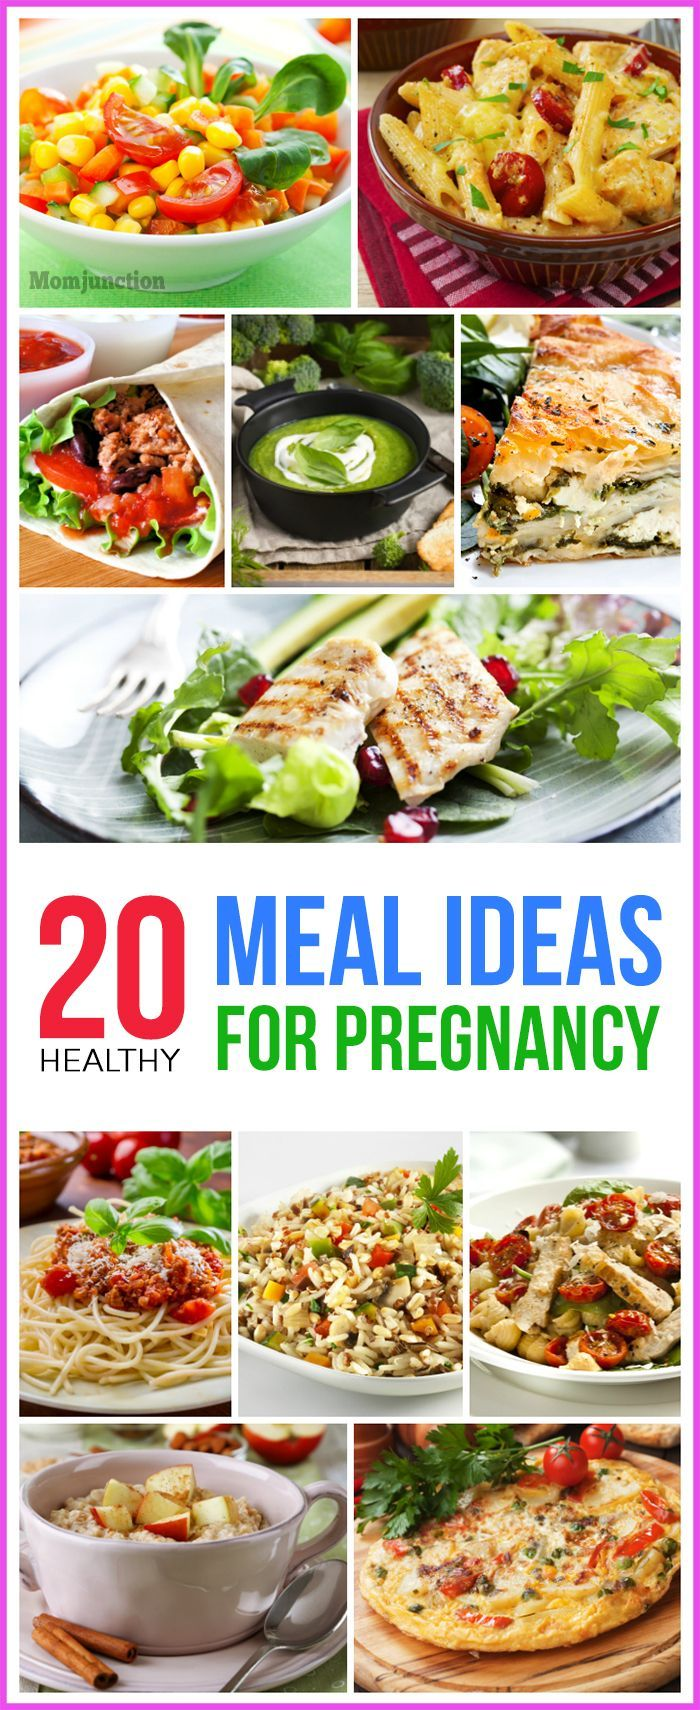 Are you pregnant and planning a meal makeover to start eating healthy and get all the nutrition the little one in your womb needs to grow? Do you want to find out about some